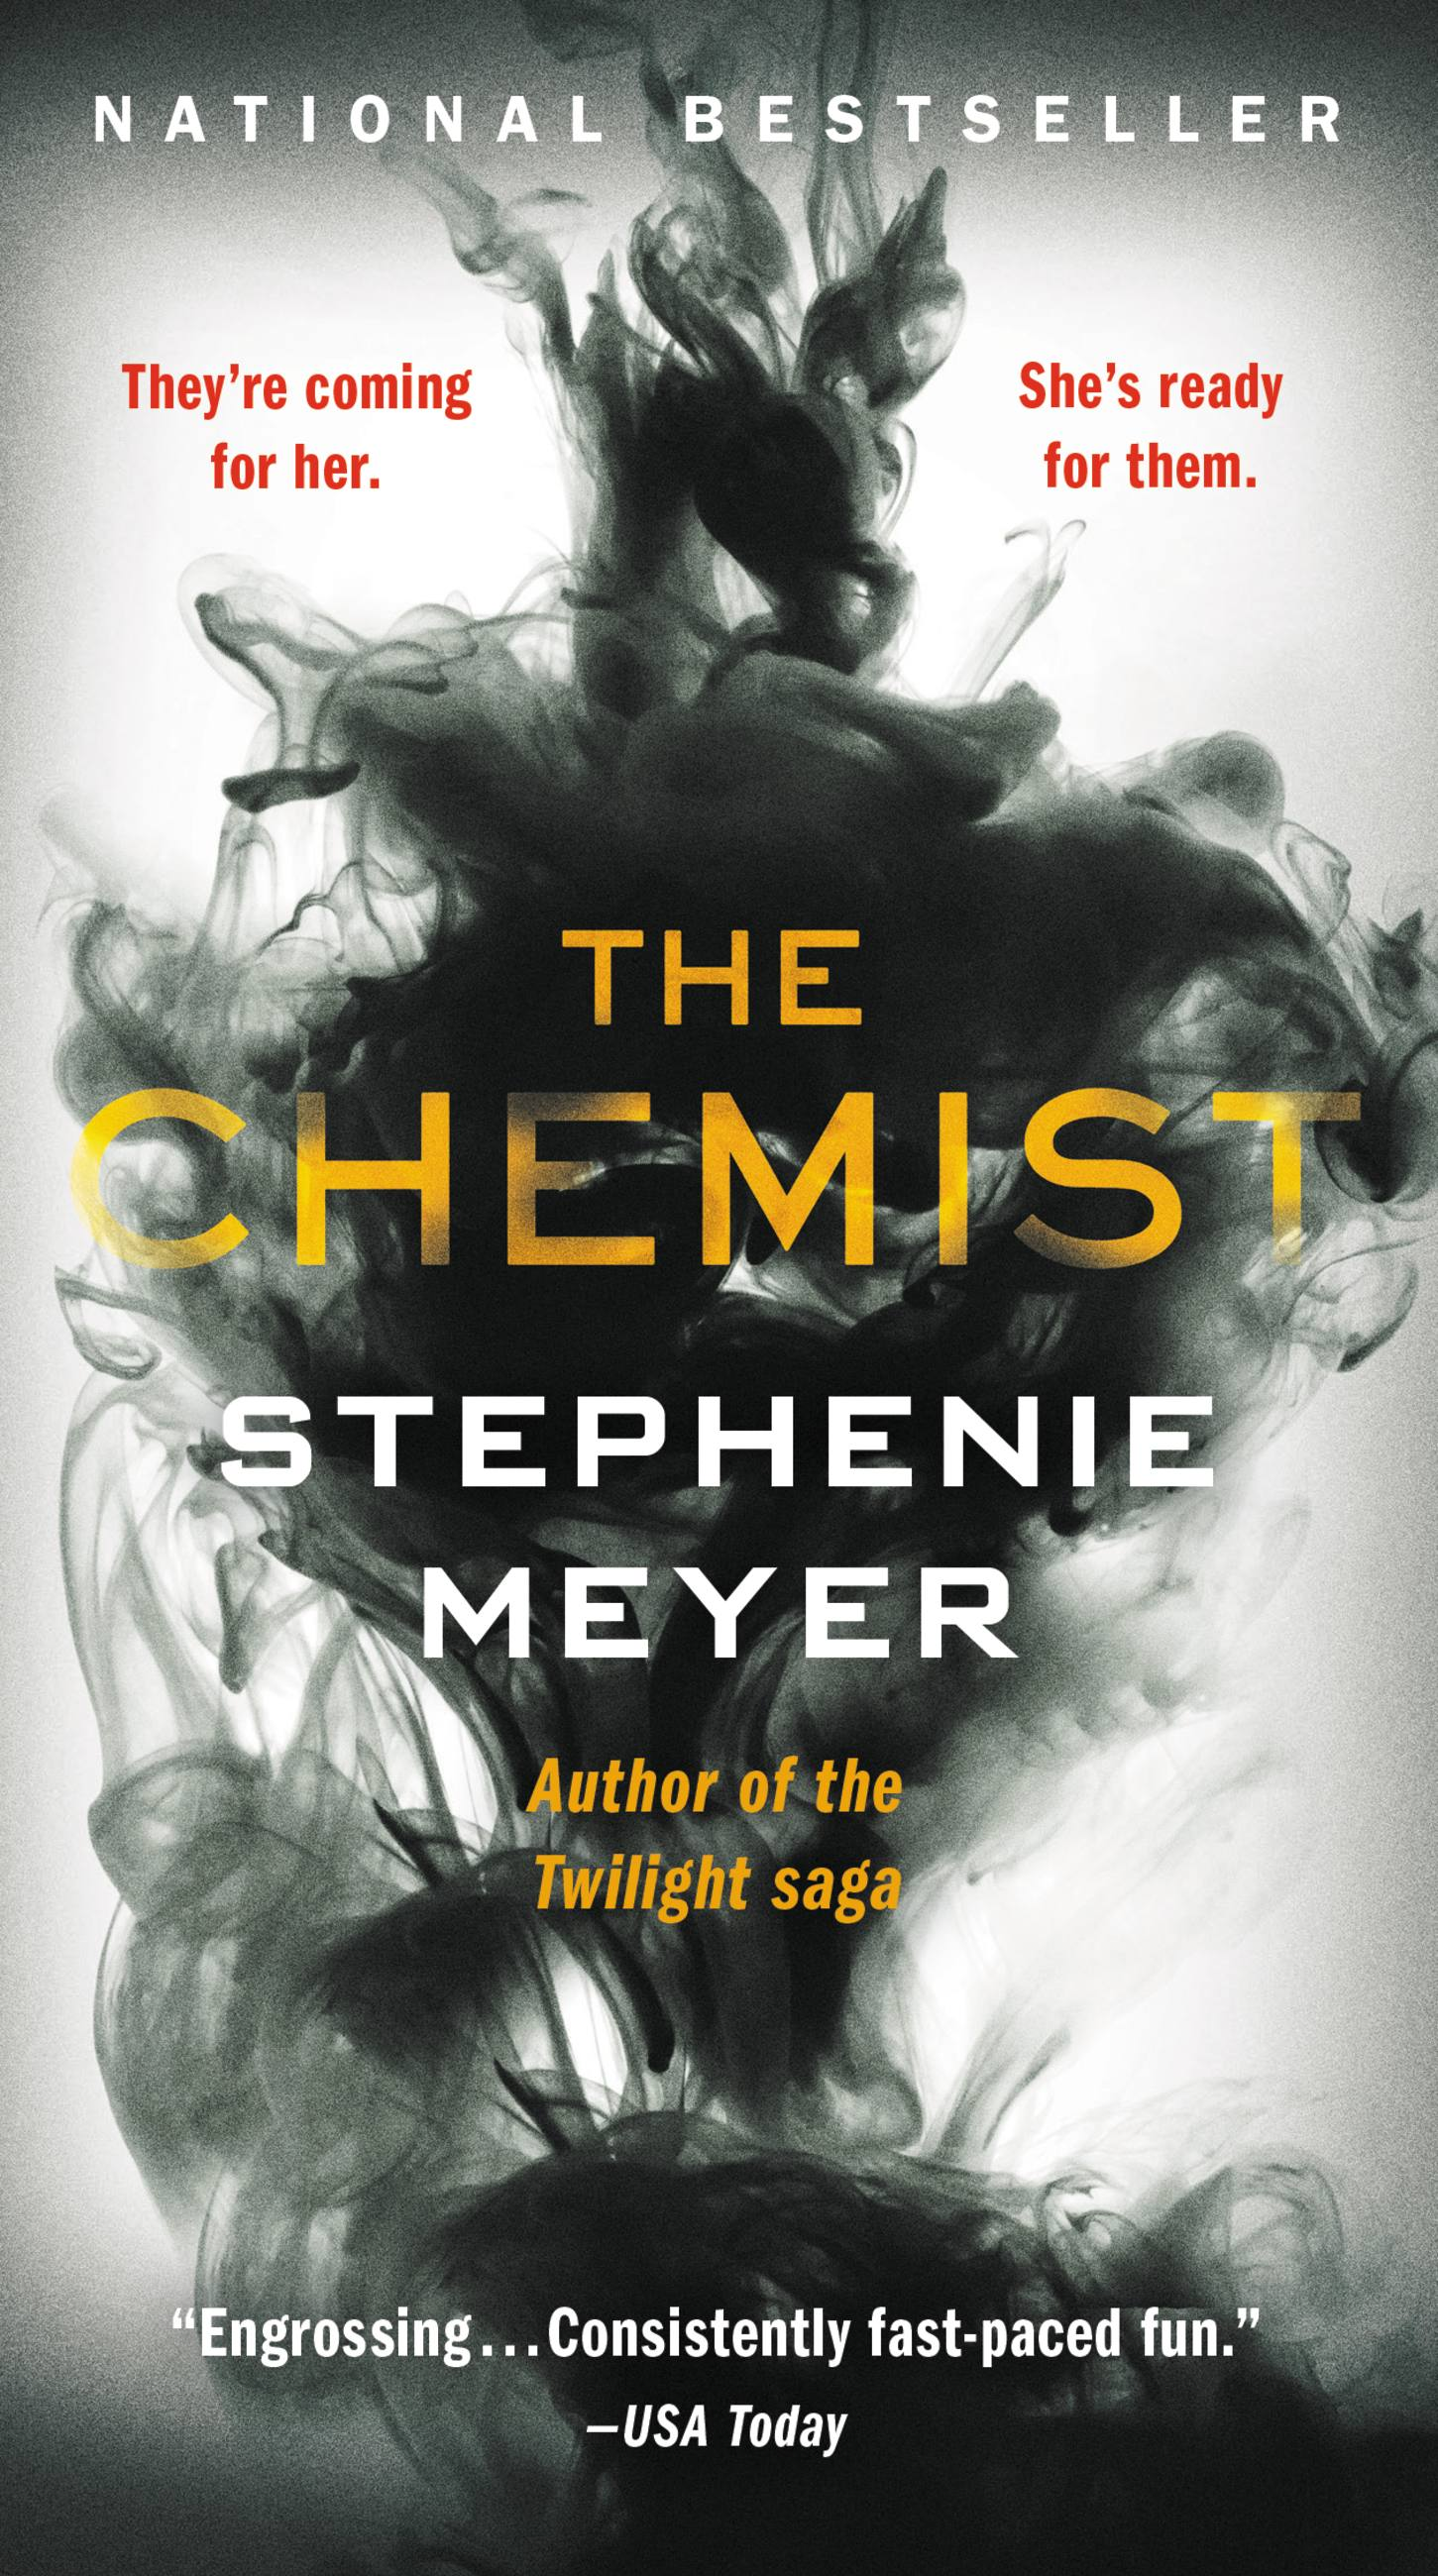 The chemist : a novel